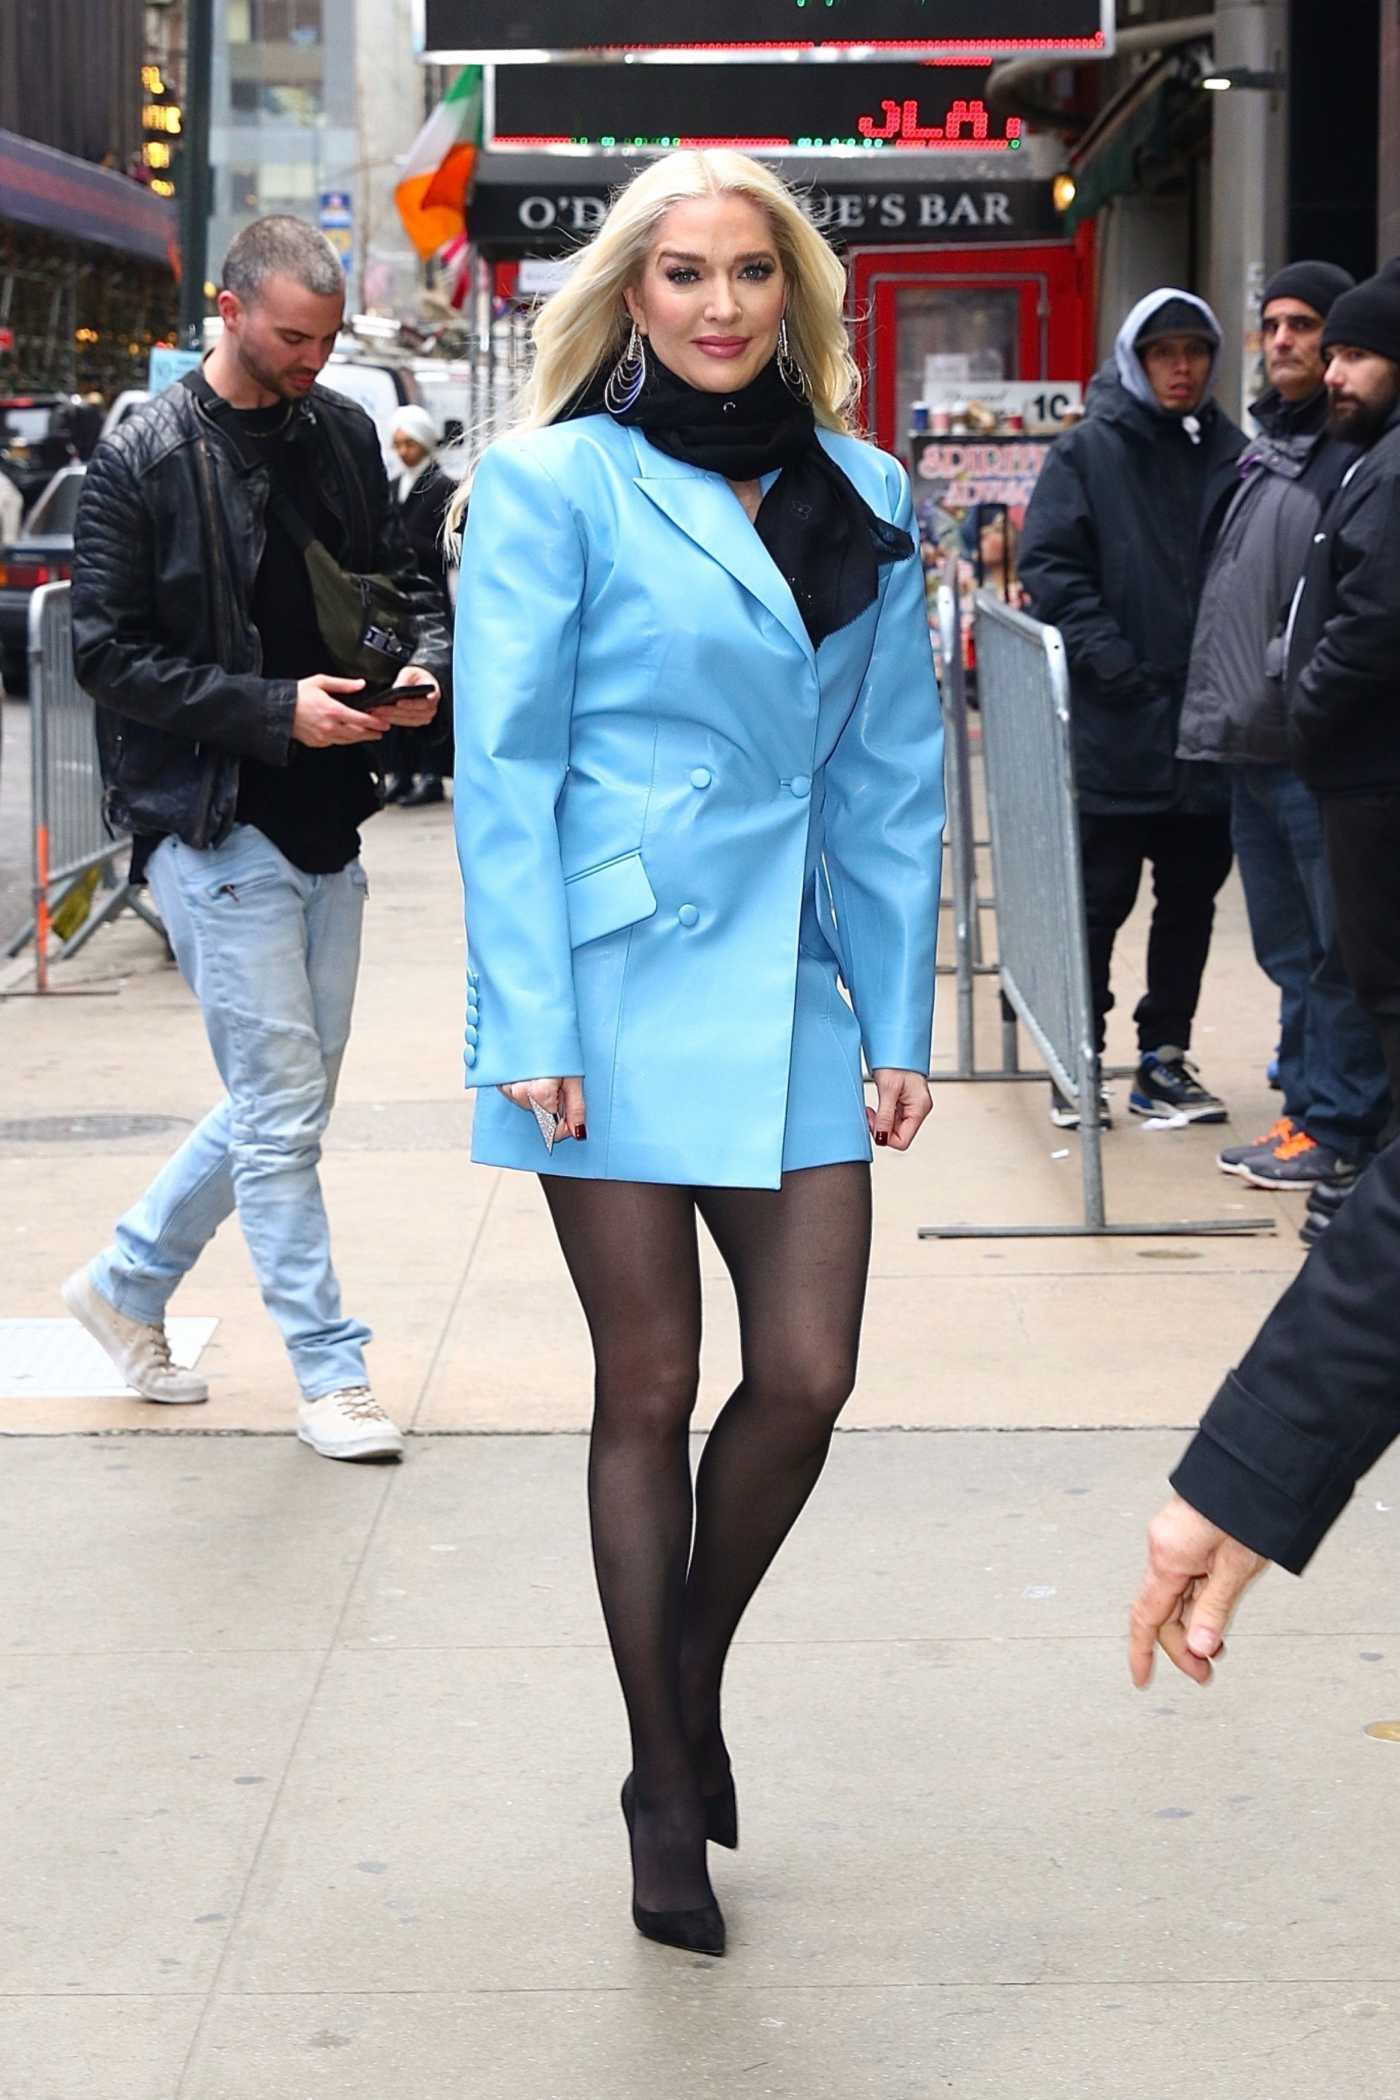 Erika Jayne in a Blue Blazer Leaves Good Morning America in New York City 02/20/2020